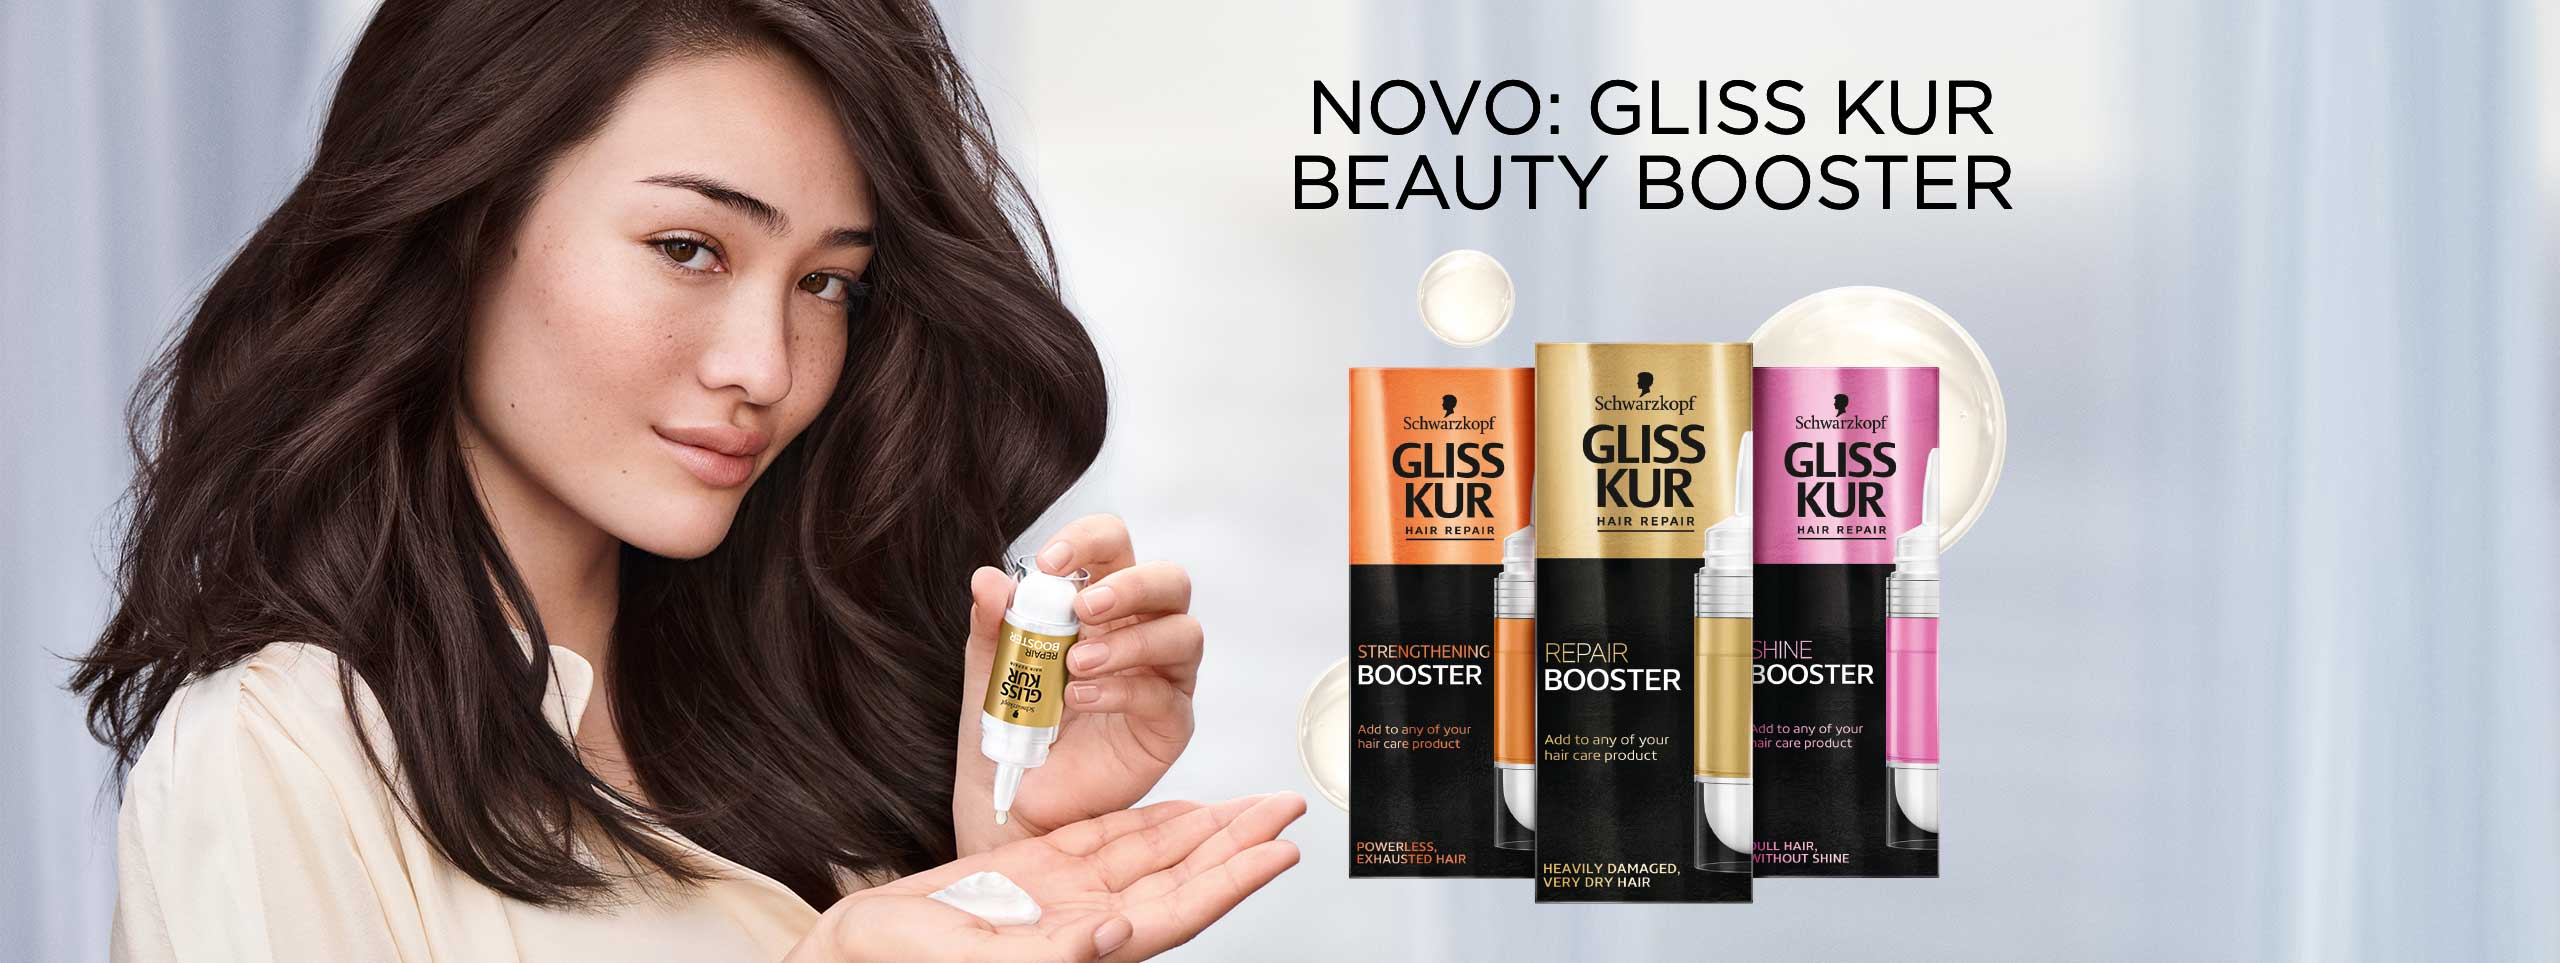 gliss-beauty-booster-HRRS-2560x963